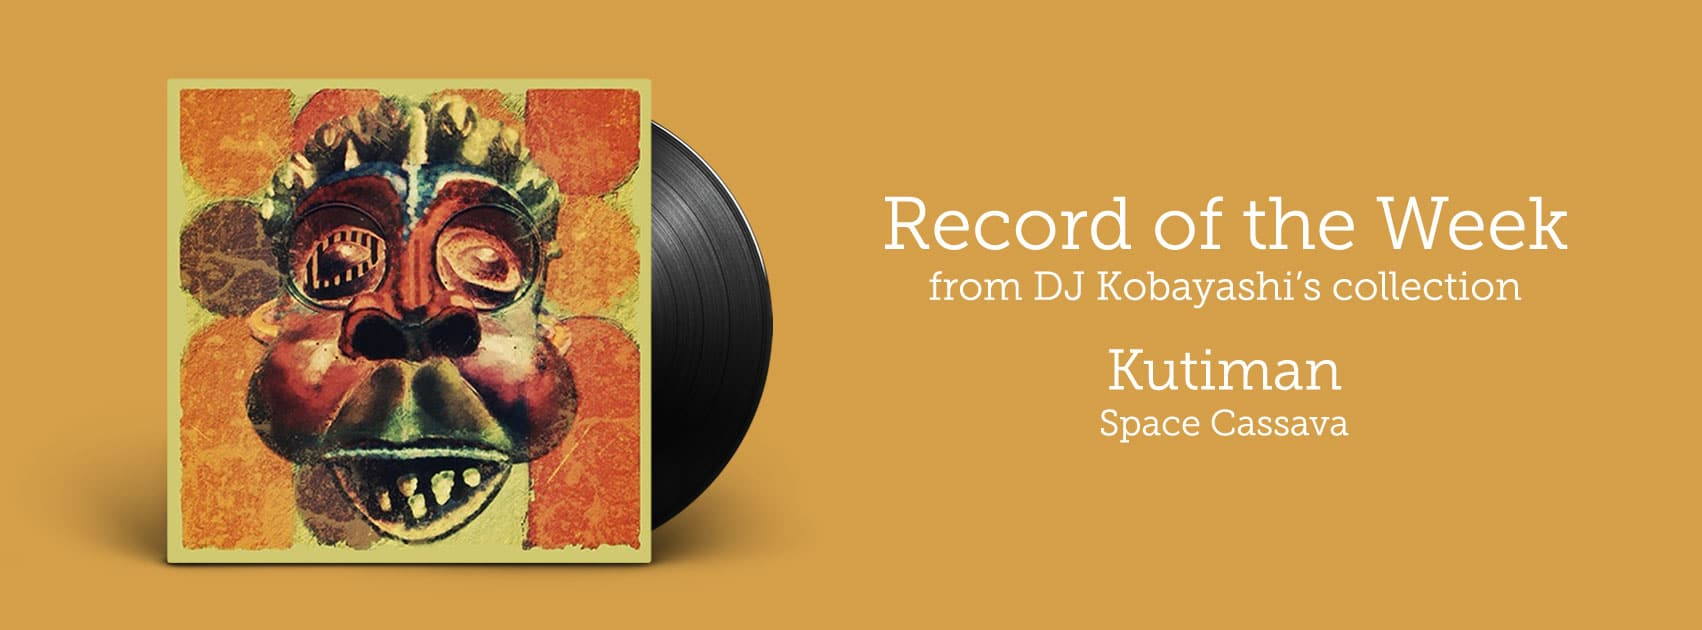 Record of the Week - Kutiman